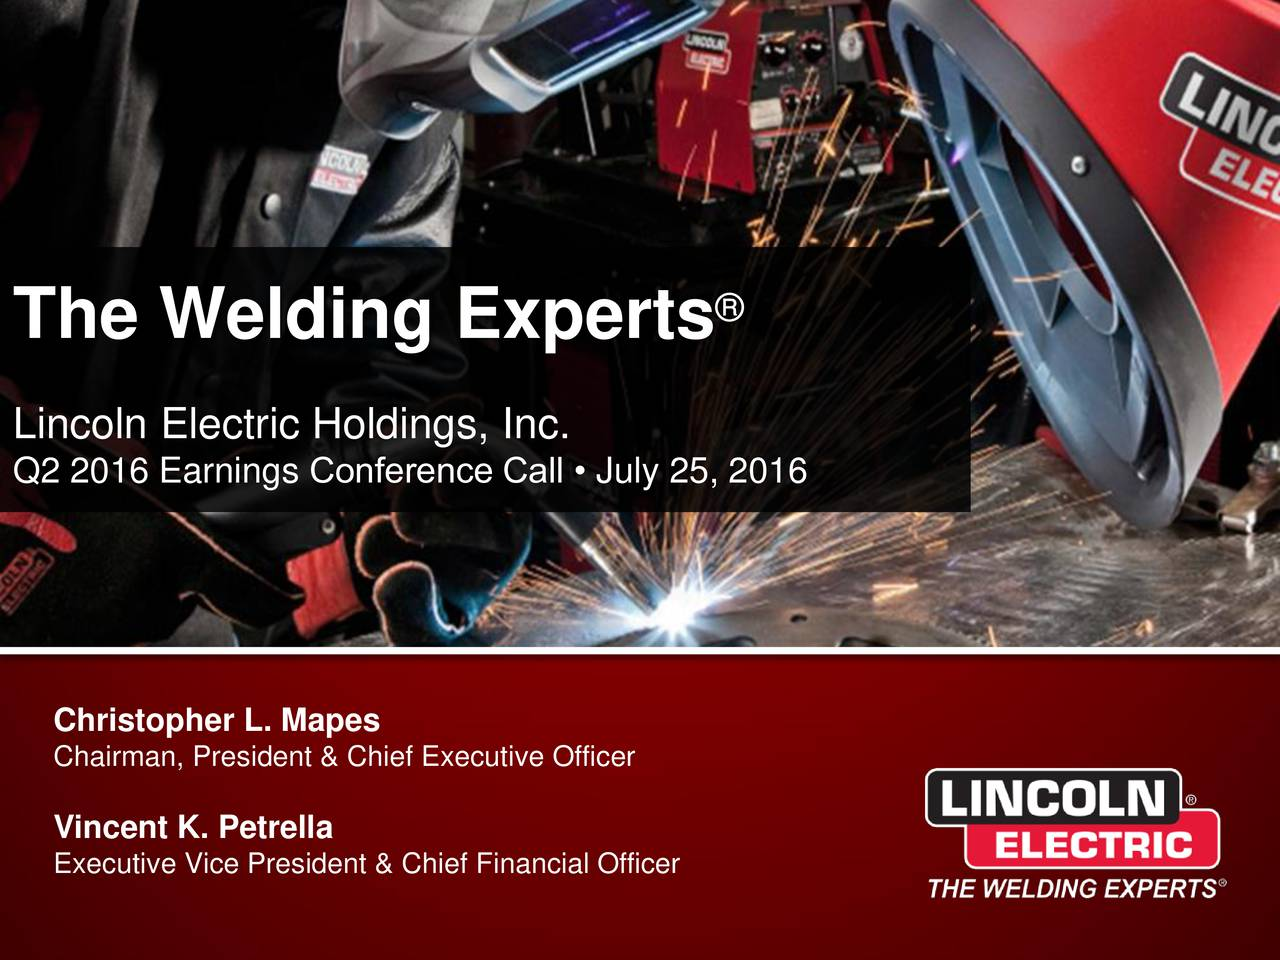 The Welding Experts Lincoln Electric Holdings, Inc. Q2 2016 Earnings Conference Call  July 25, 2016 Christopher L. Mapes Chairman, President & Chief Executive Officer Vincent K. Petrella Executive Vice President & Chief Financial Officer